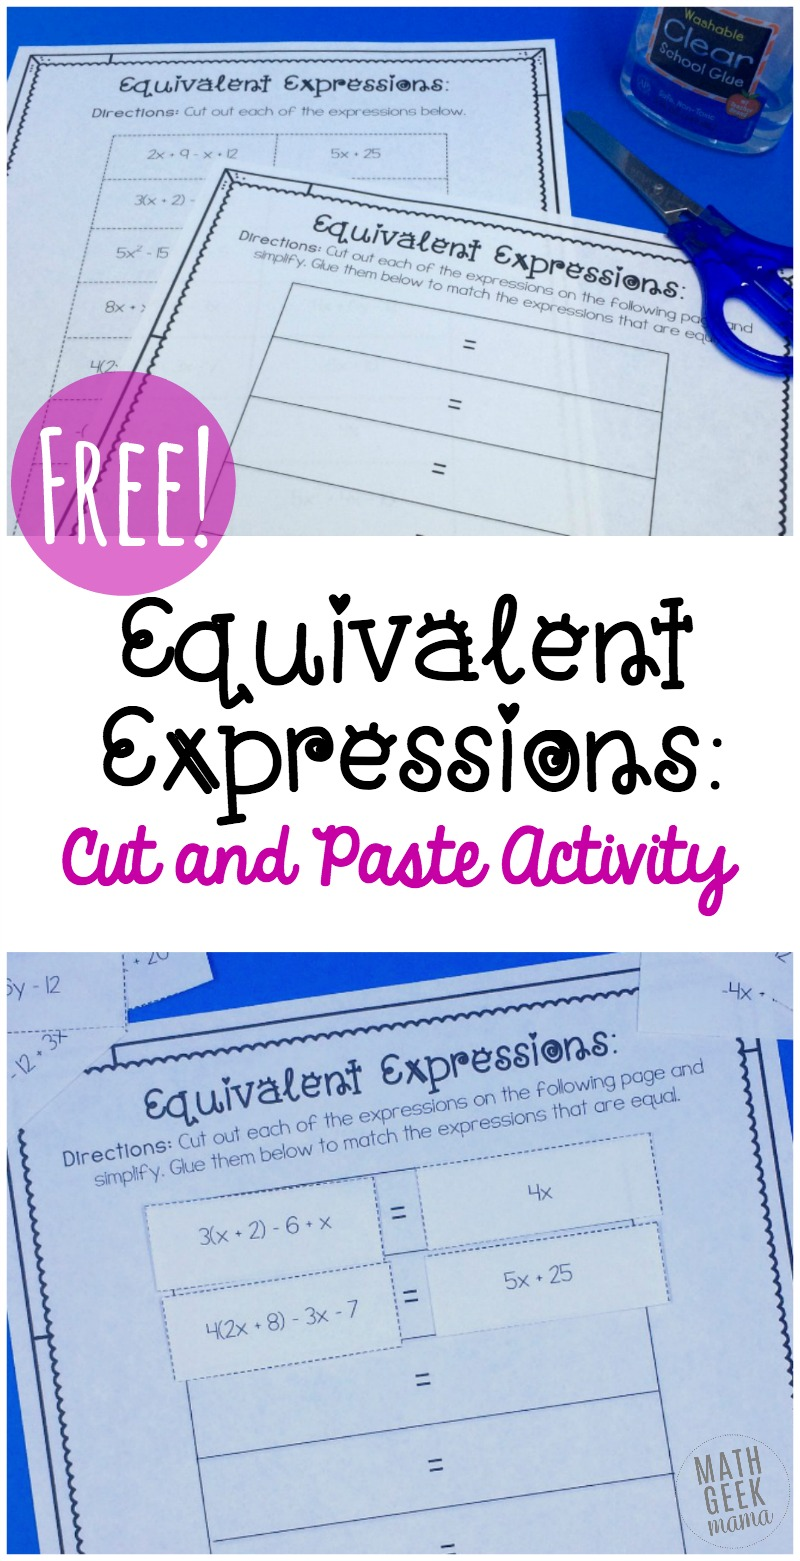 This is such a fun and simple way for kids to practice simplifying and evaluating expressions. Encourage algebraic thinking and build a foundation for solving equations with this FREE equivalent expressions activity.